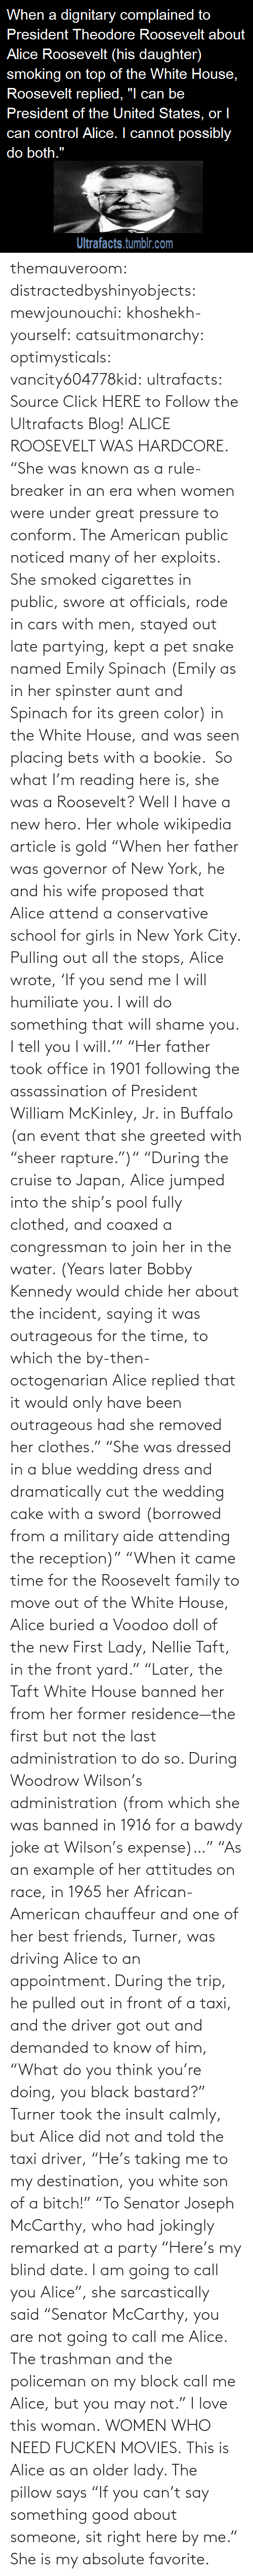 "Japan: themauveroom: distractedbyshinyobjects:  mewjounouchi:  khoshekh-yourself:  catsuitmonarchy:  optimysticals:  vancity604778kid:  ultrafacts:     Source Click HERE to Follow the Ultrafacts Blog!     ALICE ROOSEVELT WAS HARDCORE. ""She was known as a rule-breaker in an era when women were under great pressure to conform. The American public noticed many of her exploits. She smoked cigarettes in public, swore at officials, rode in cars with men, stayed out late partying, kept a pet snake named Emily Spinach (Emily as in her spinster aunt and Spinach for its green color) in the White House, and was seen placing bets with a bookie.    So what I'm reading here is, she was a Roosevelt?  Well I have a new hero.  Her whole wikipedia article is gold ""When her father was governor of New York, he and his wife proposed that Alice attend a conservative school for girls in New York City. Pulling out all the stops, Alice wrote, 'If you send me I will humiliate you. I will do something that will shame you. I tell you I will.'"" ""Her father took office in 1901 following the assassination of President William McKinley, Jr. in Buffalo (an event that she greeted with ""sheer rapture."")"" ""During the cruise to Japan, Alice jumped into the ship's pool fully clothed, and coaxed a congressman to join her in the water. (Years later Bobby Kennedy would chide her about the incident, saying it was outrageous for the time, to which the by-then-octogenarian Alice replied that it would only have been outrageous had she removed her clothes."" ""She was dressed in a blue wedding dress and dramatically cut the wedding cake with a sword (borrowed from a military aide attending the reception)"" ""When it came time for the Roosevelt family to move out of the White House, Alice buried a Voodoo doll of the new First Lady, Nellie Taft, in the front yard."" ""Later, the Taft White House banned her from her former residence—the first but not the last administration to do so. During Woodrow Wilson's administration (from which she was banned in 1916 for a bawdy joke at Wilson's expense)…"" ""As an example of her attitudes on race, in 1965 her African-American chauffeur and one of her best friends, Turner, was driving Alice to an appointment. During the trip, he pulled out in front of a taxi, and the driver got out and demanded to know of him, ""What do you think you're doing, you black bastard?"" Turner took the insult calmly, but Alice did not and told the taxi driver, ""He's taking me to my destination, you white son of a bitch!"" ""To Senator Joseph McCarthy, who had jokingly remarked at a party ""Here's my blind date. I am going to call you Alice"", she sarcastically said ""Senator McCarthy, you are not going to call me Alice. The trashman and the policeman on my block call me Alice, but you may not.""  I love this woman.  WOMEN WHO NEED FUCKEN MOVIES.   This is Alice as an older lady. The pillow says ""If you can't say something good about someone, sit right here by me.""  She is my absolute favorite."